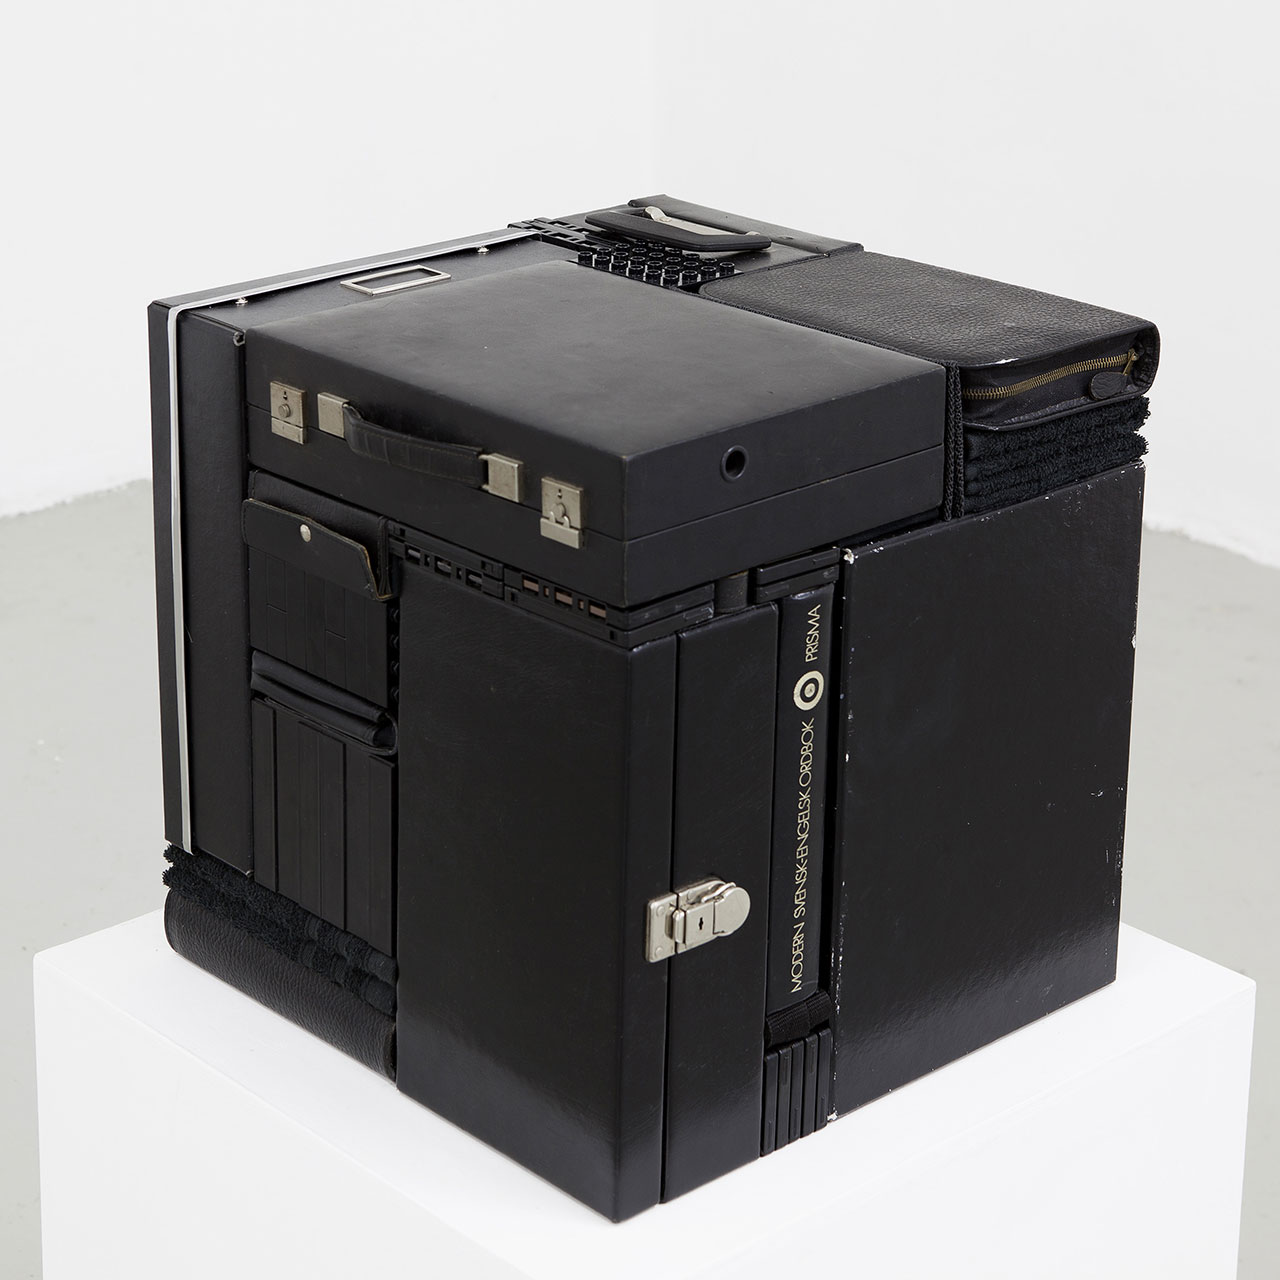 Michael Johansson, Déjà vu, 2018, black ordinary items, 45,5x44x42,5 cm. Courtesy: The Flat – Massimo Carasi, Milan. Photo © Michael Johansson.